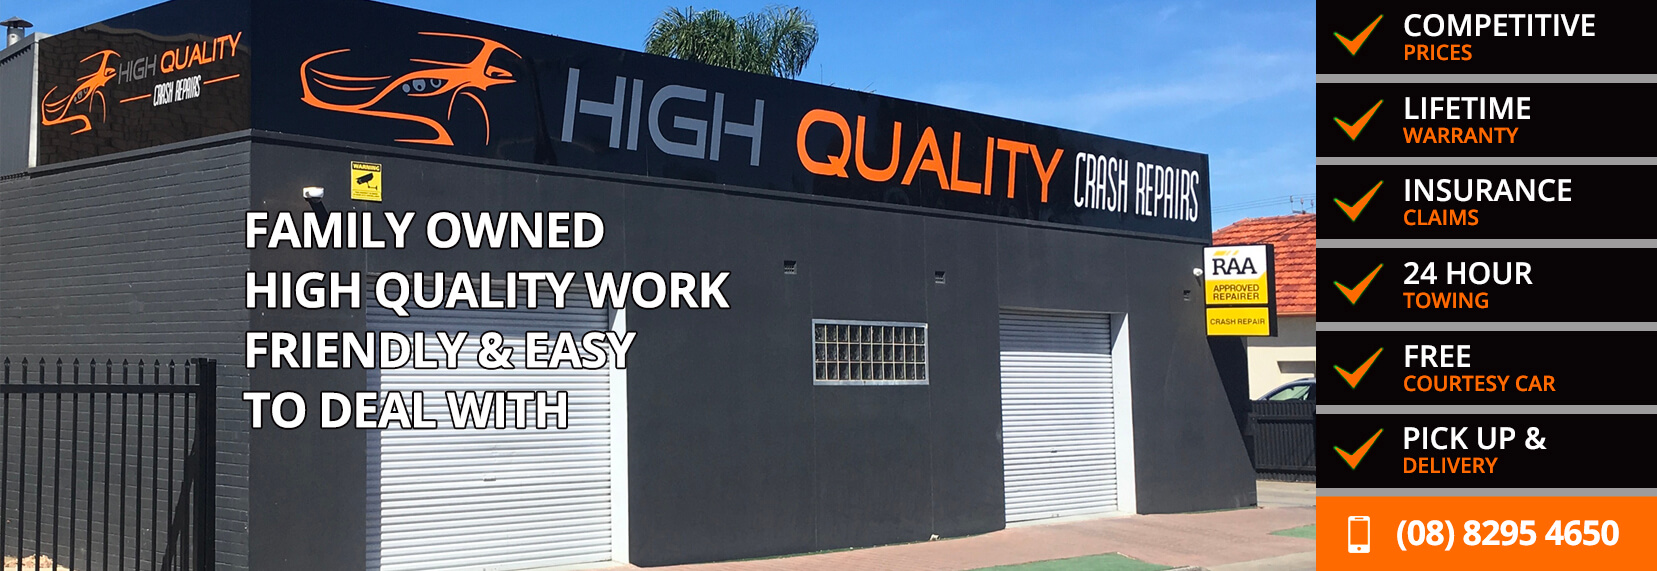 High-Quality-Crash-Repairs-1